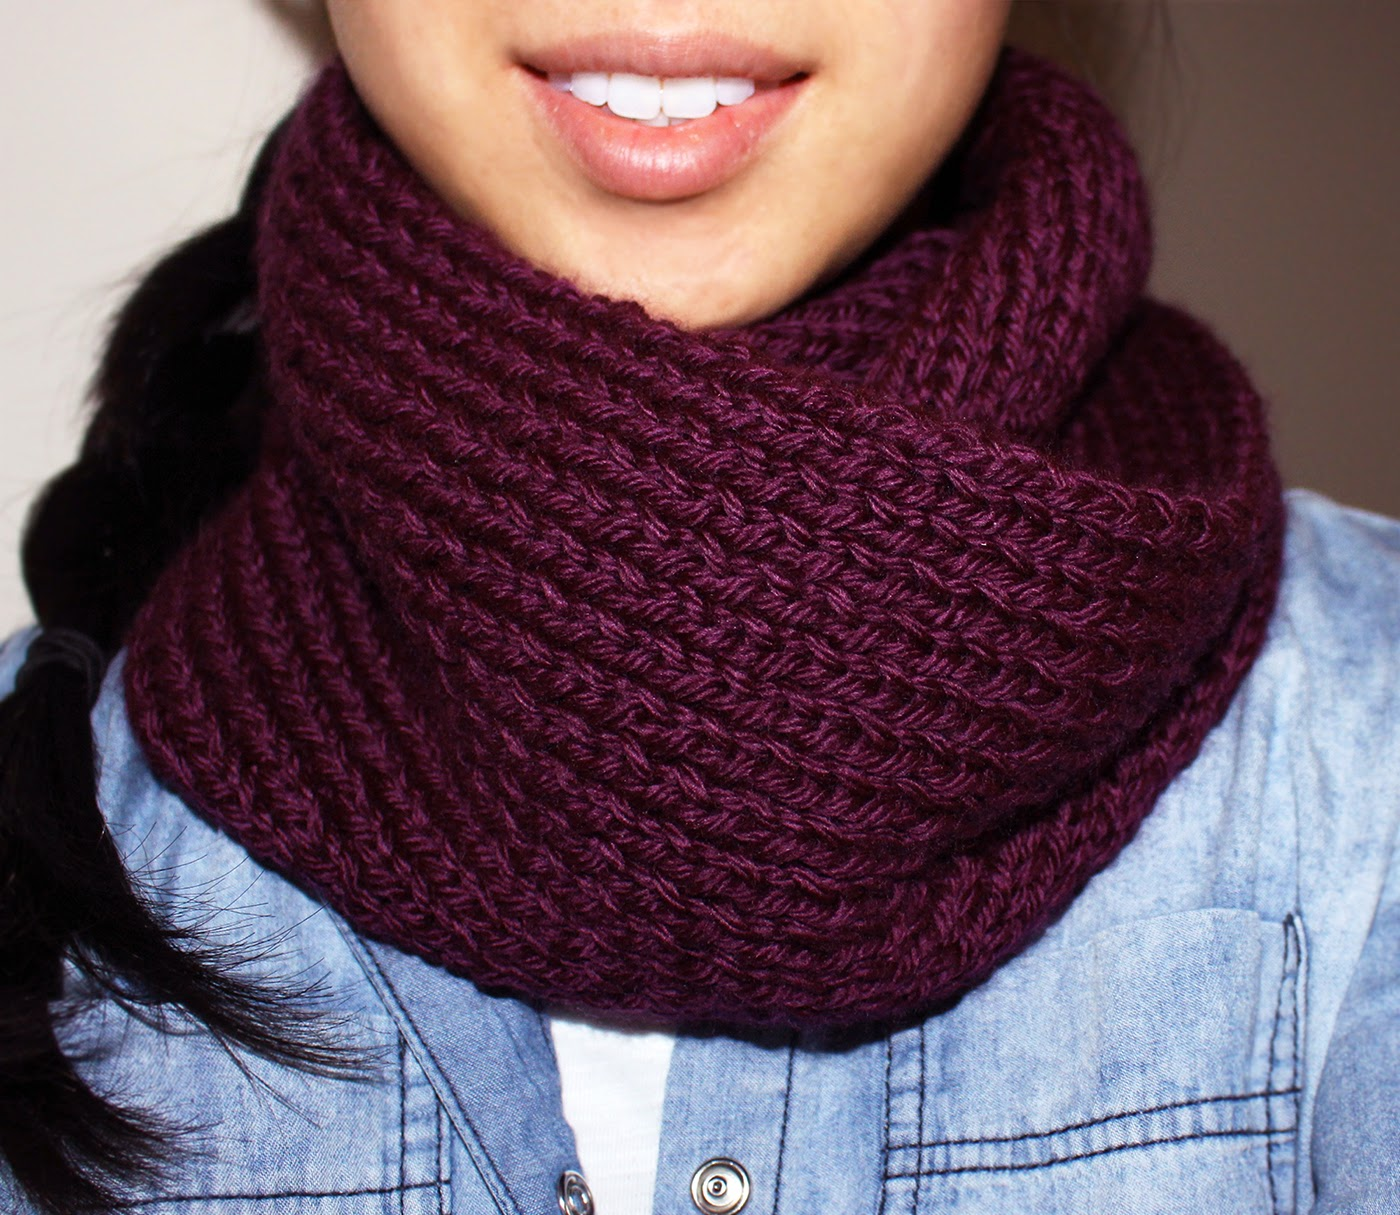 Knitting Patterns Scarf Free : Purllin: Acai Infinity Circle Scarf [free knitting pattern]